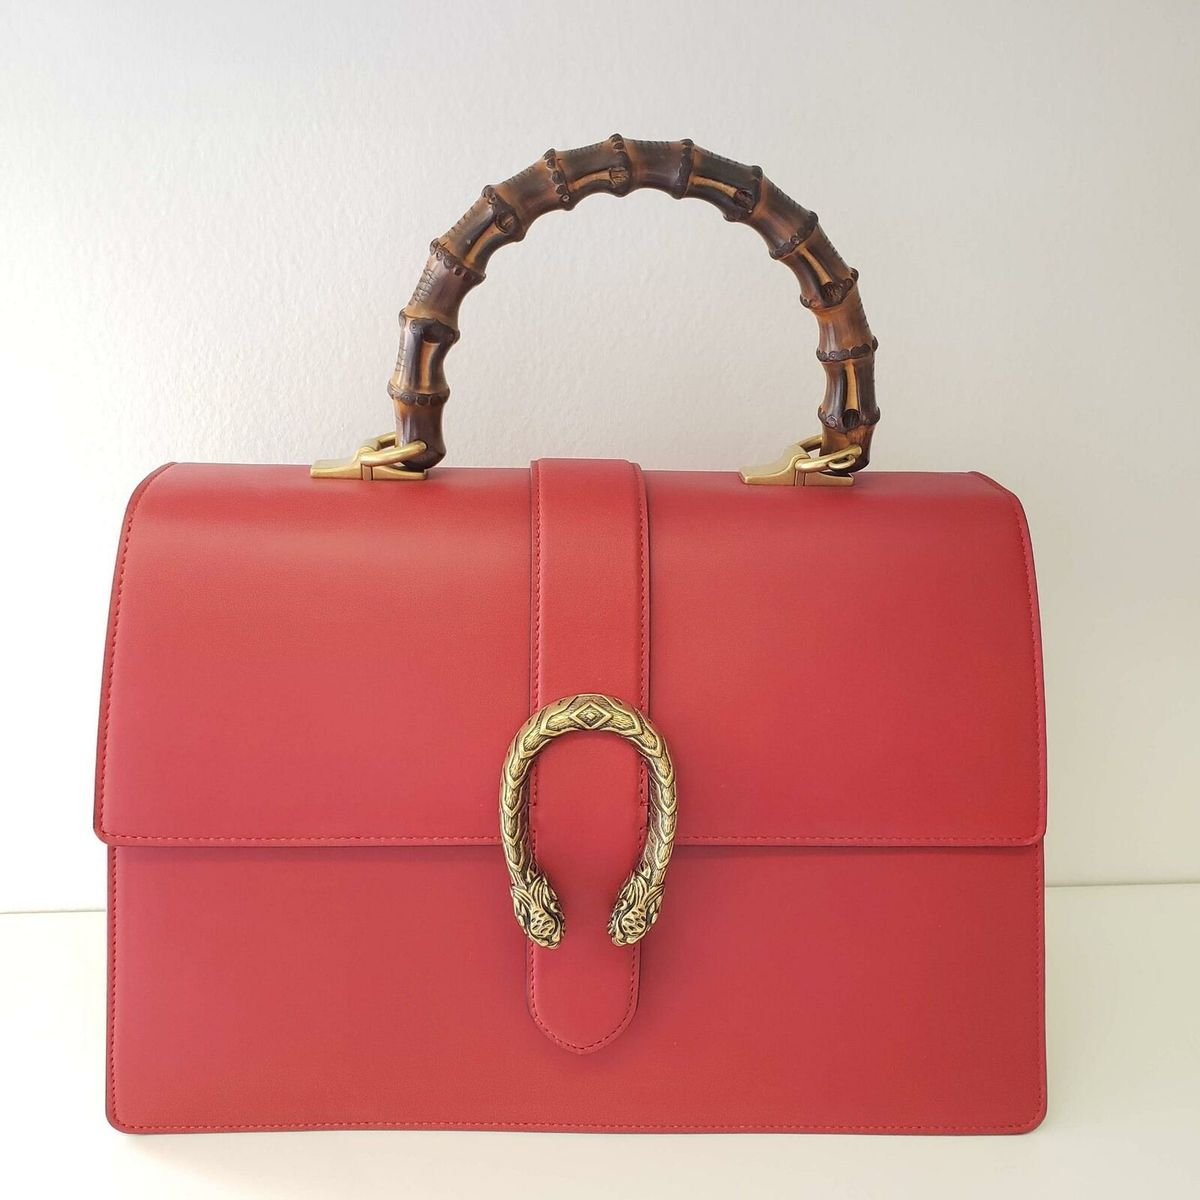 Gucci グッチ ディオニュソス ラージ バンブー トップ ハンドル レザー バッグ レッド Dionysus Large Bamboo Top Handle Leather Bag   Red   NEW